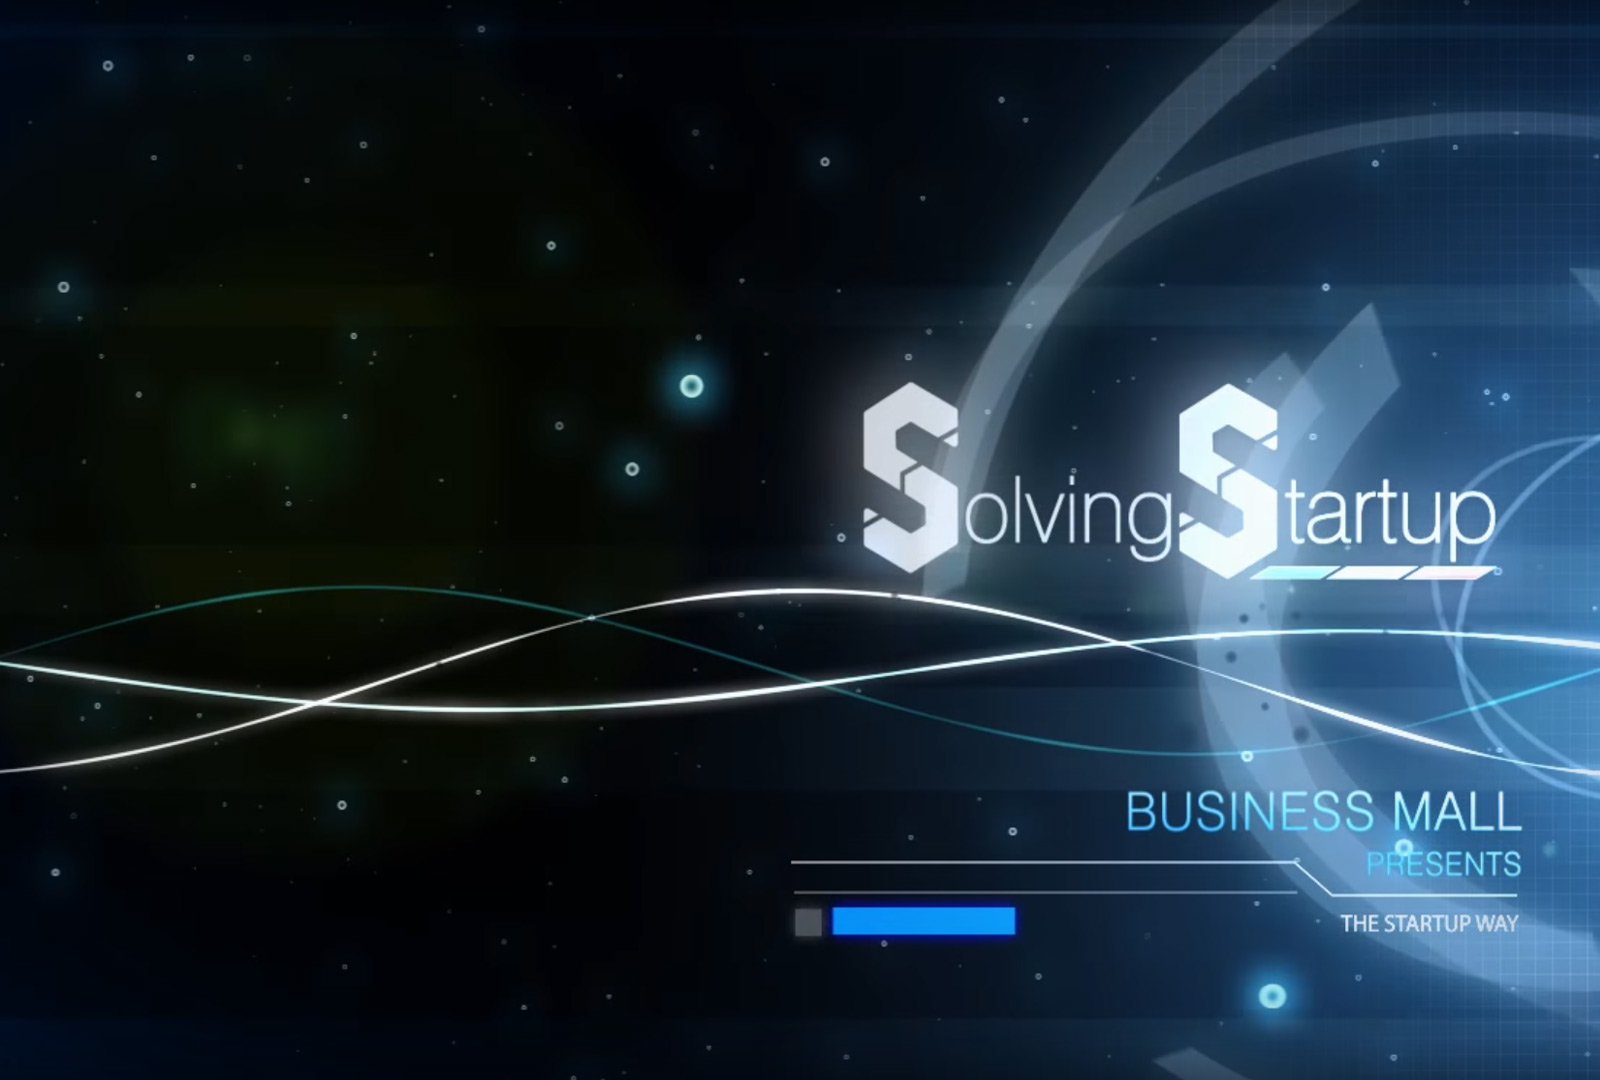 Video_SolvingStartup3